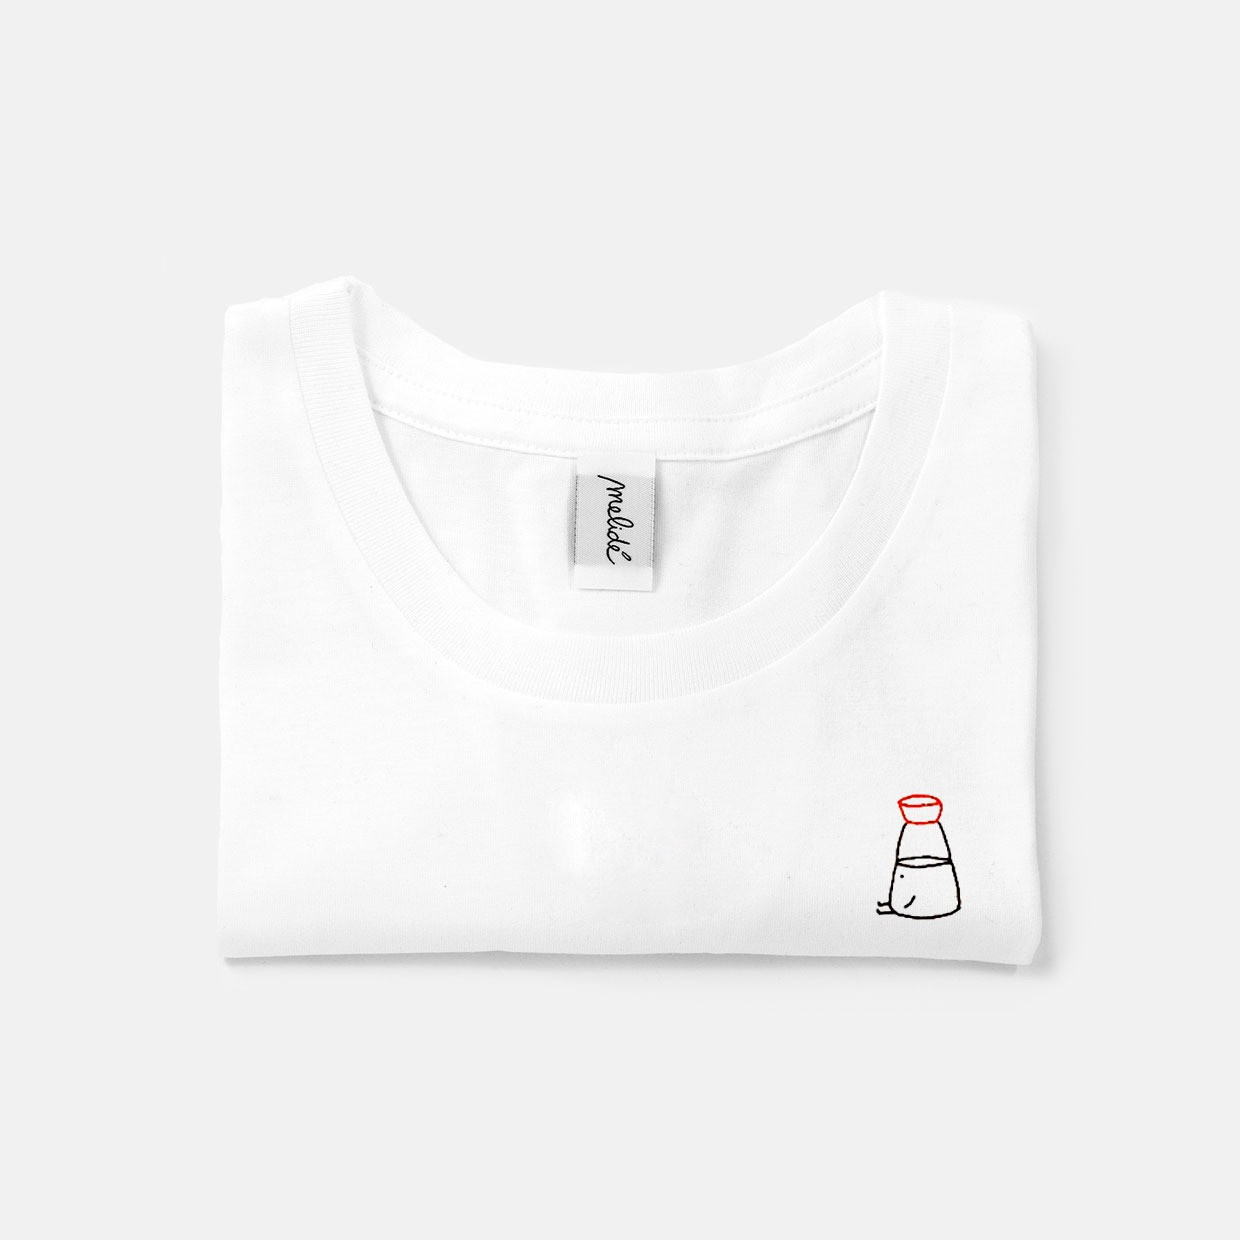 The SOY SAUCE slim fit tee